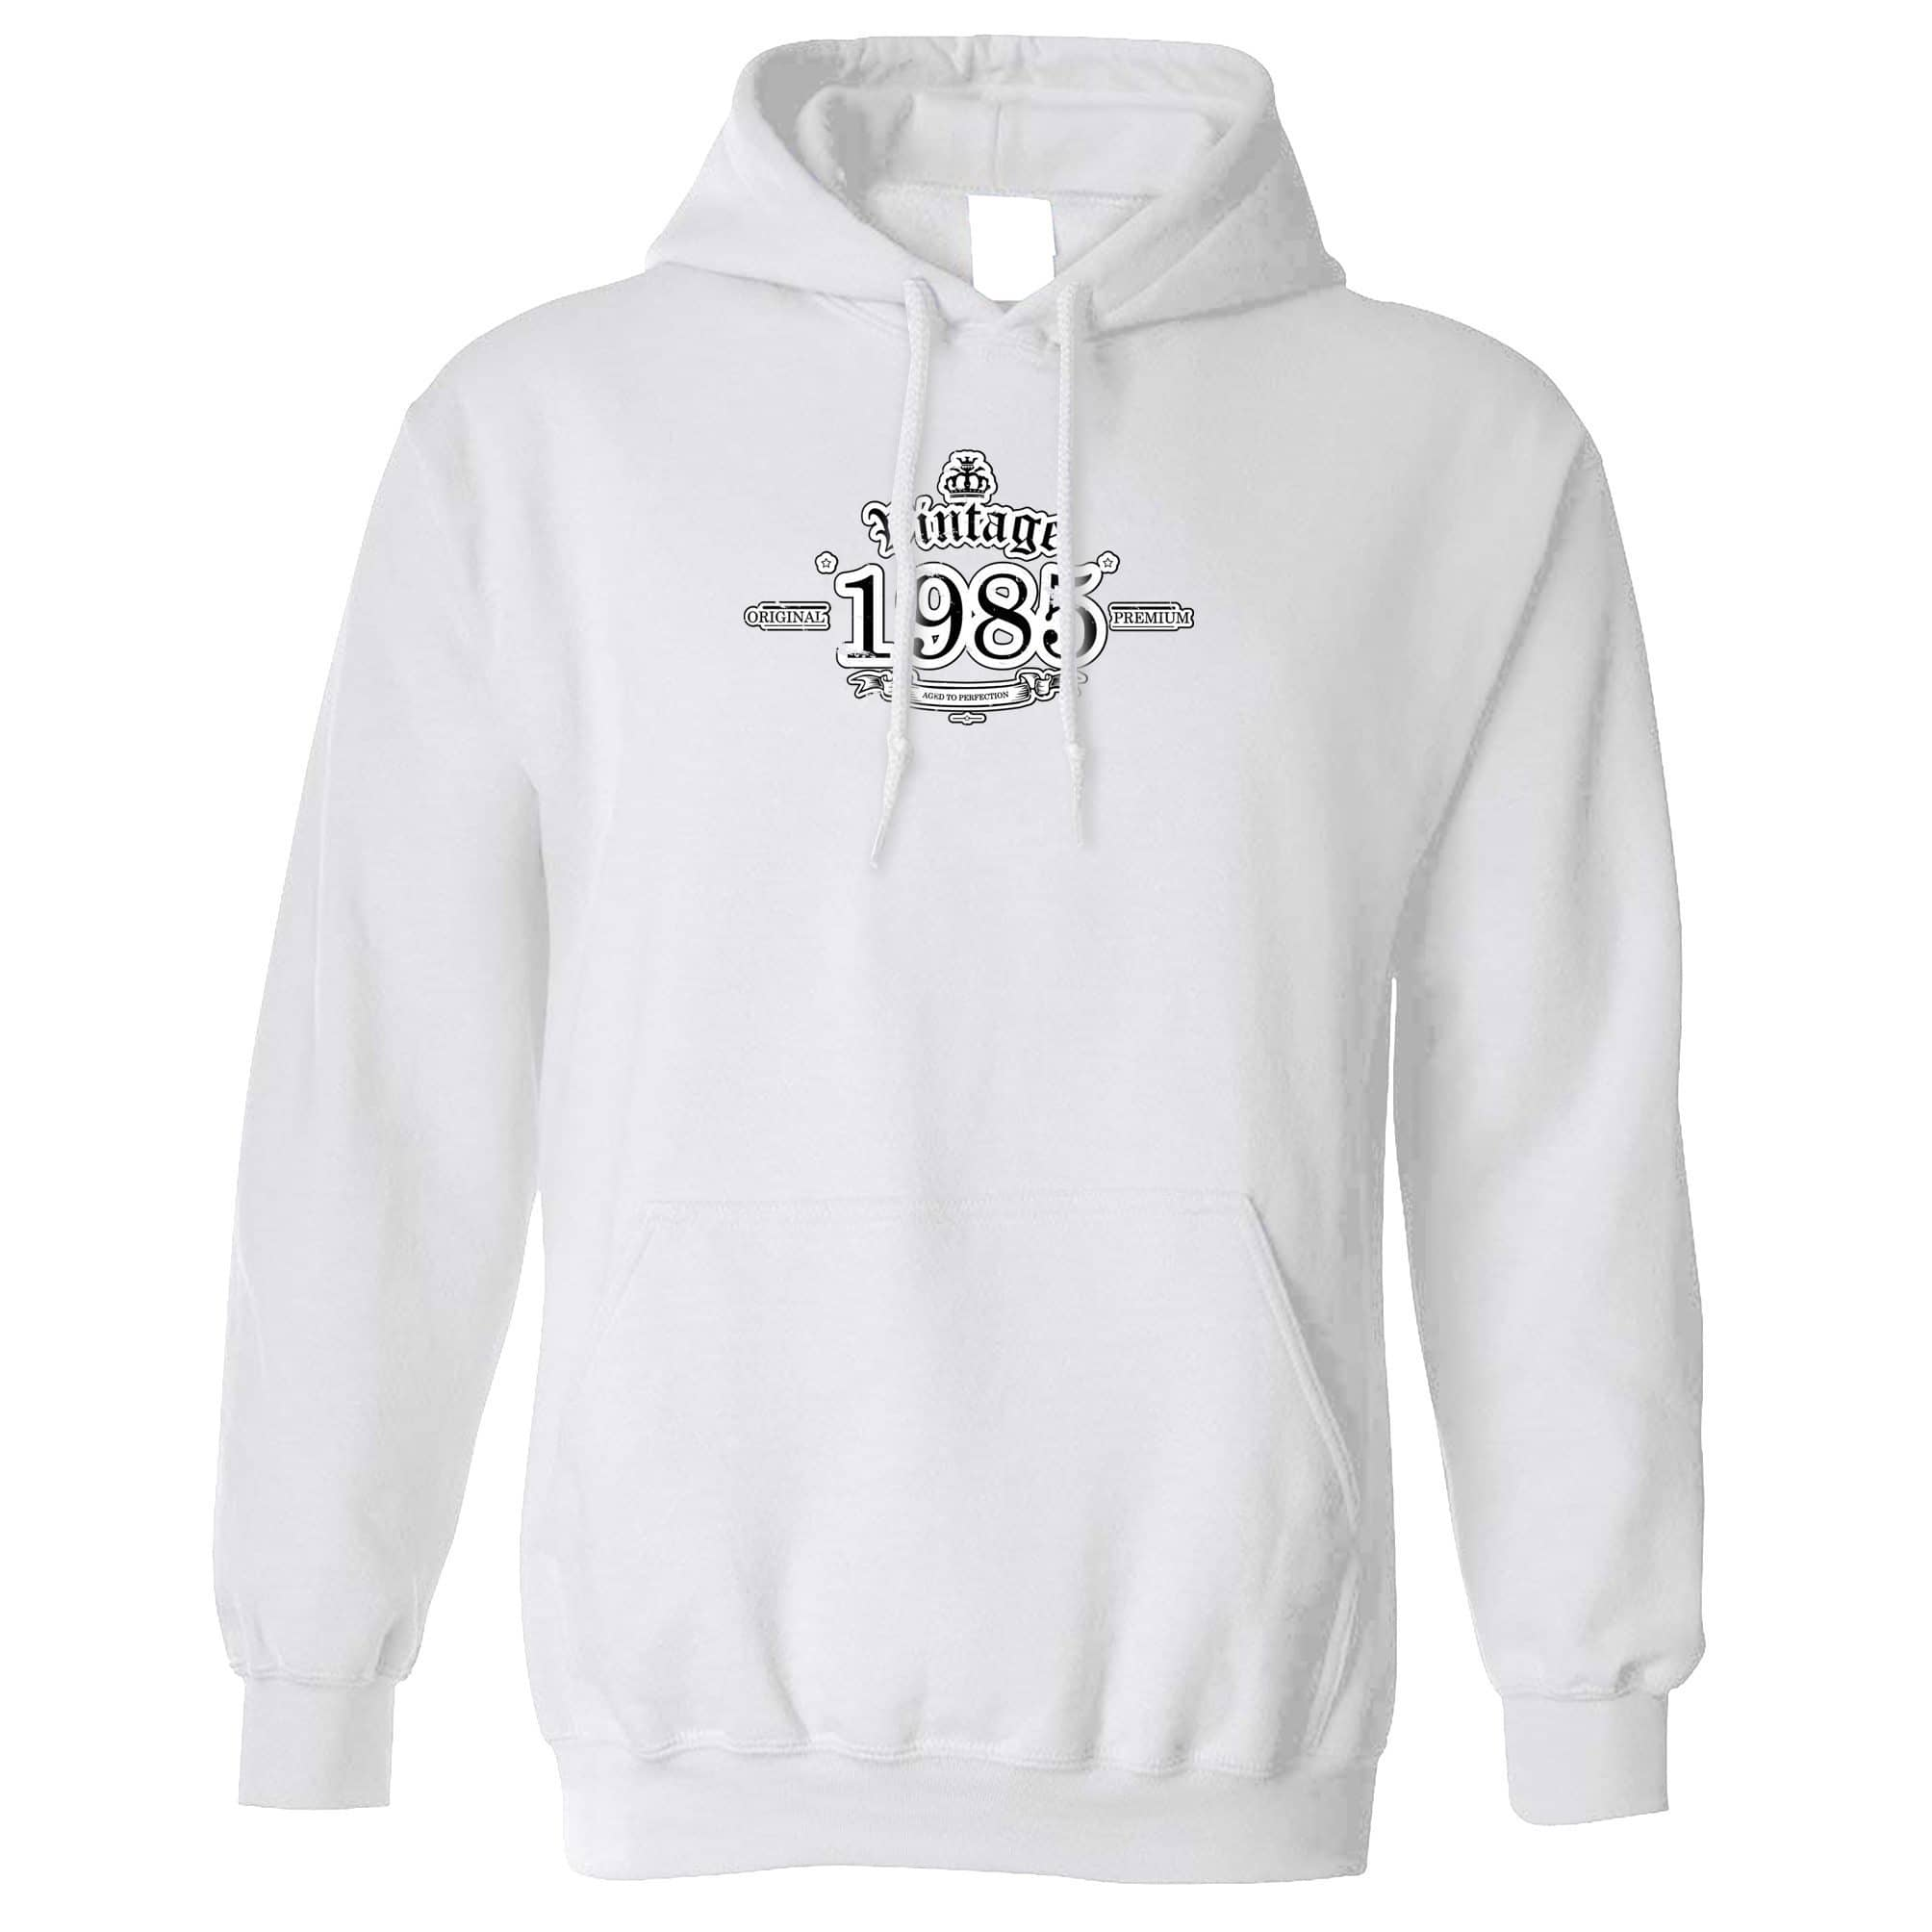 33rd Birthday Hoodie Vintage 1985 Aged To Perfection Hooded Jumper